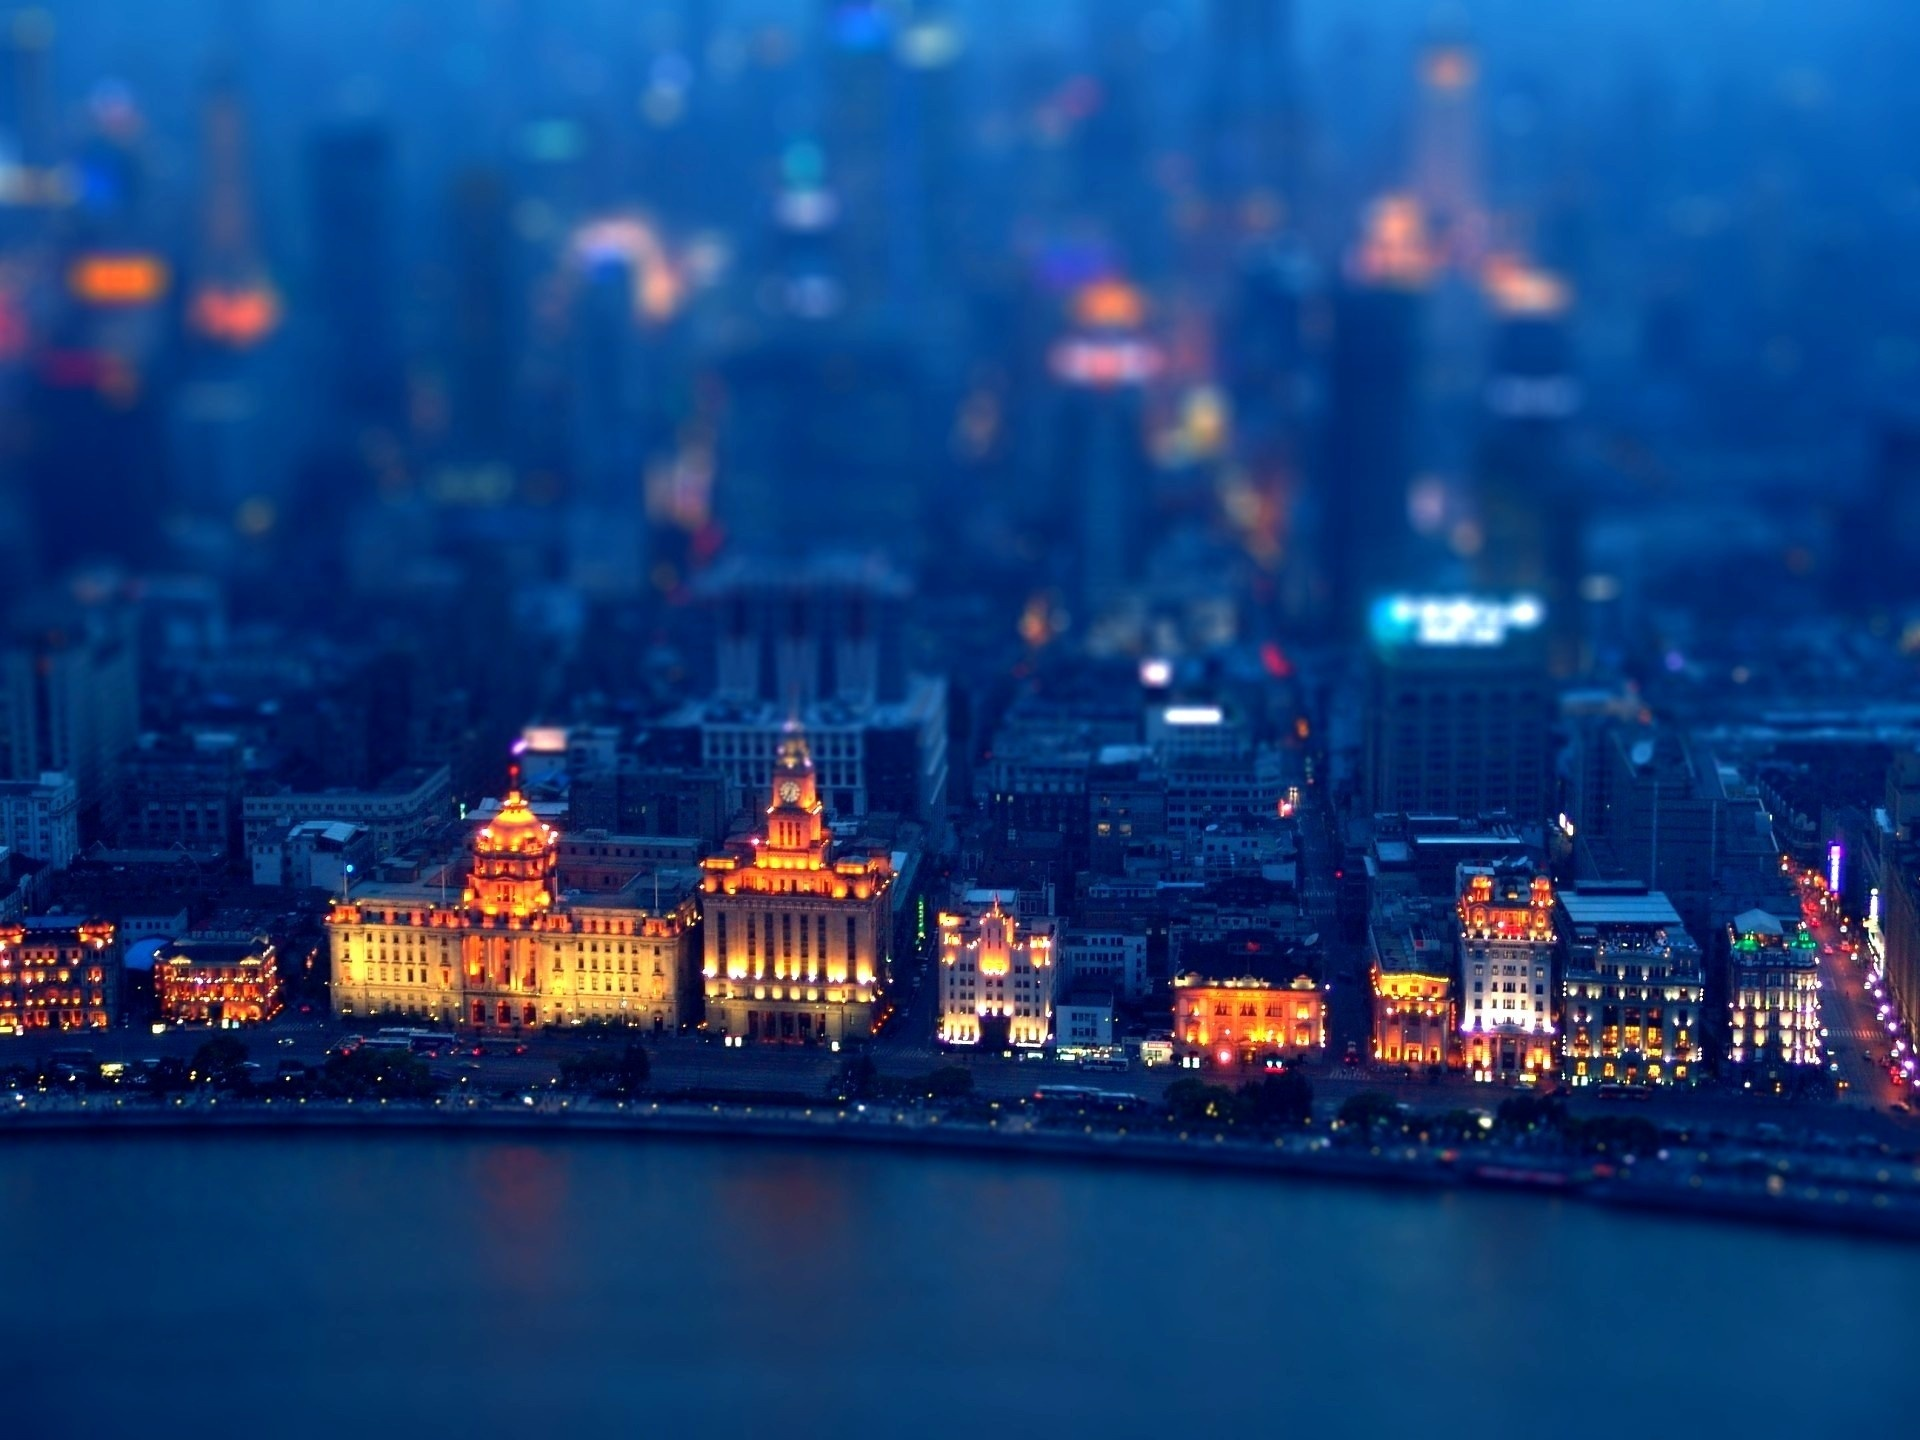 hd tilt shift background